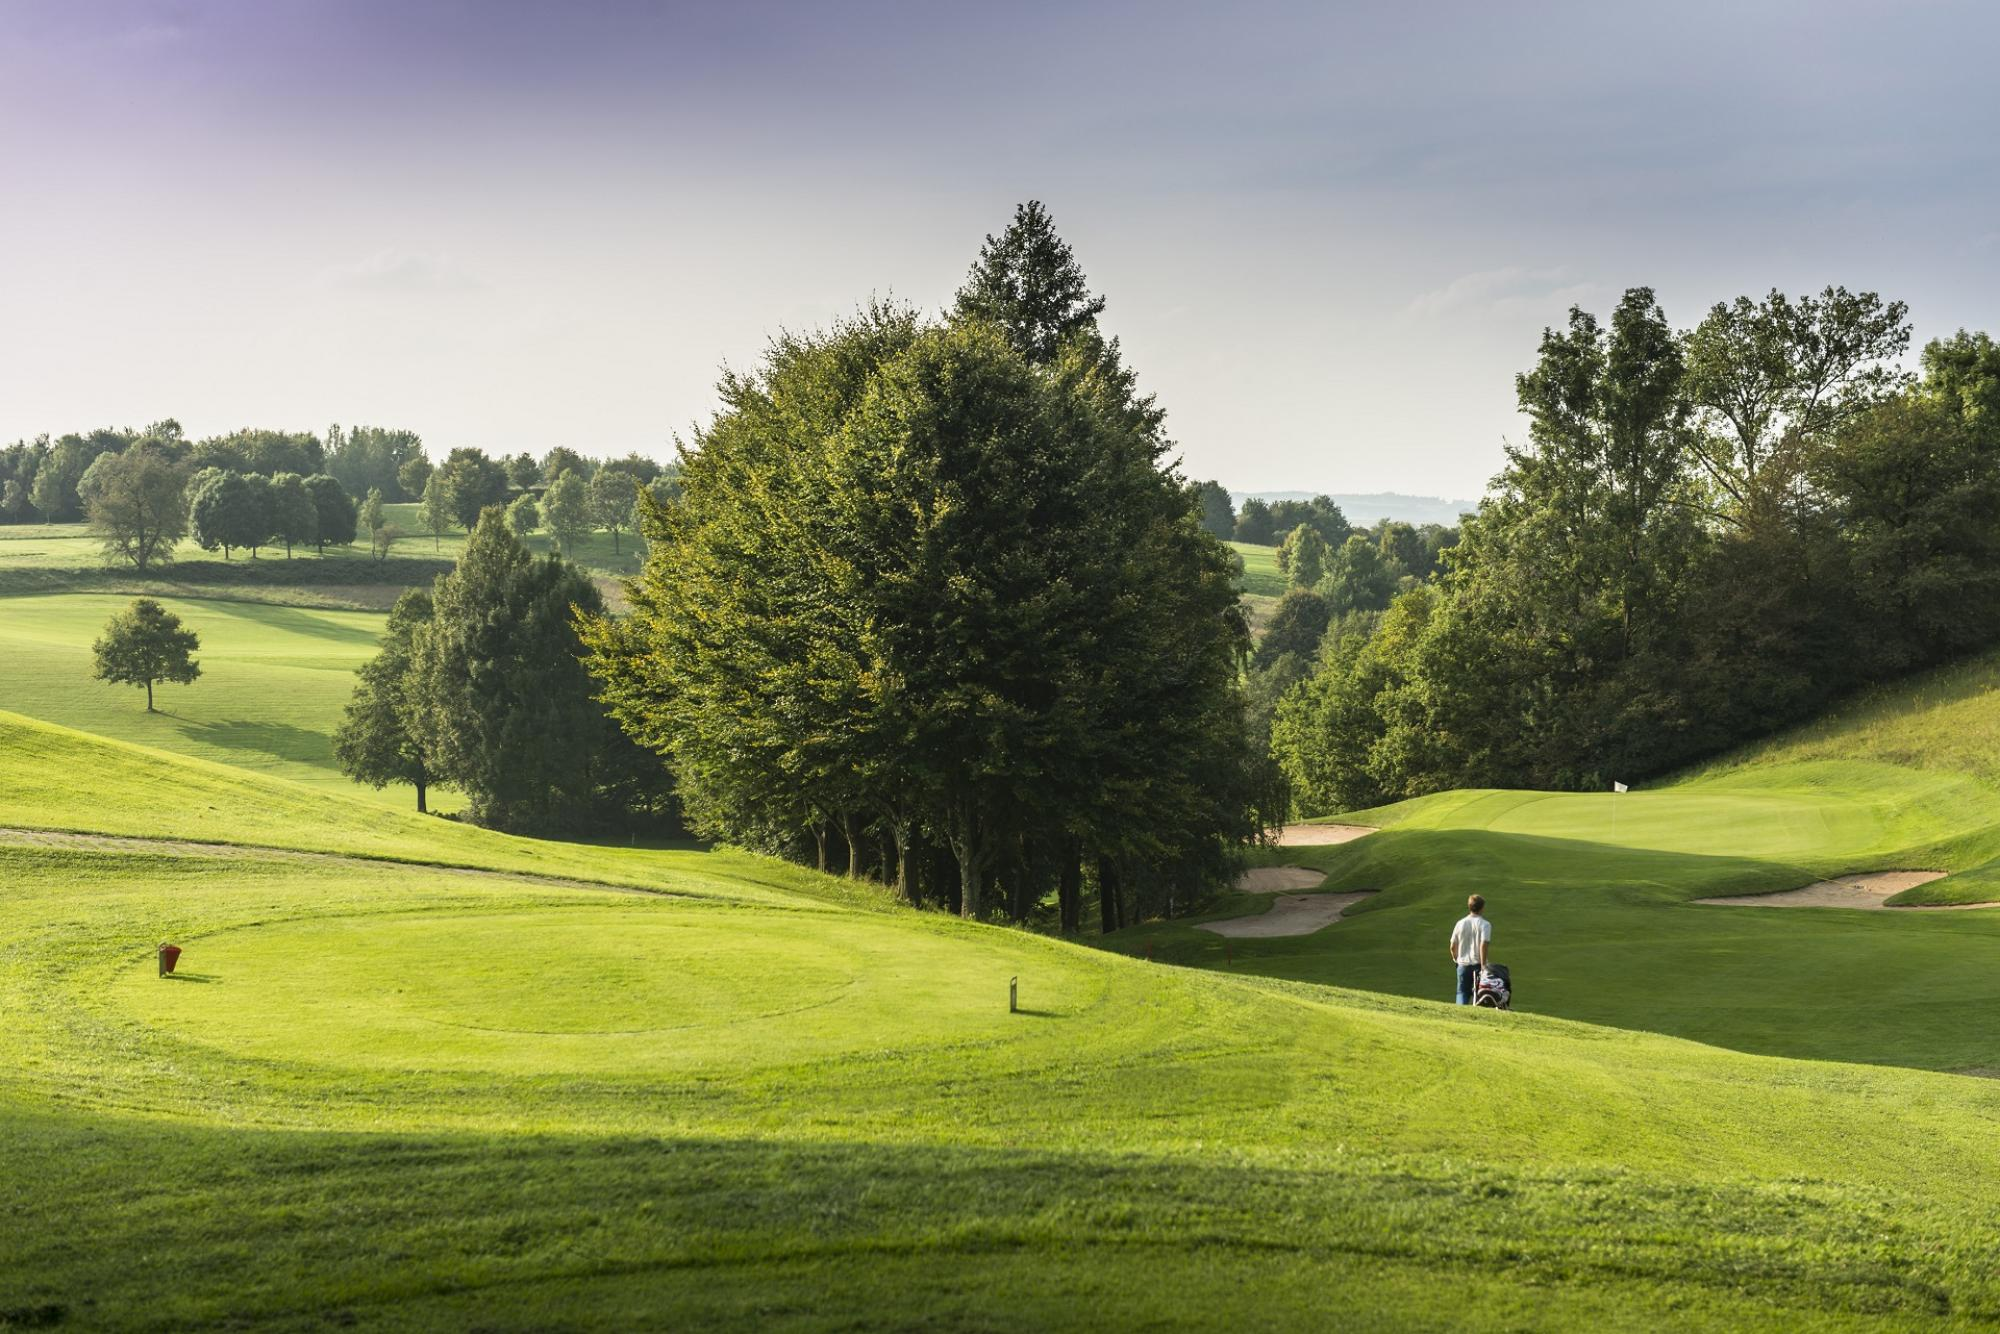 The St Wolfgang Golf Course Uttlau's scenic golf course in spectacular Germany.